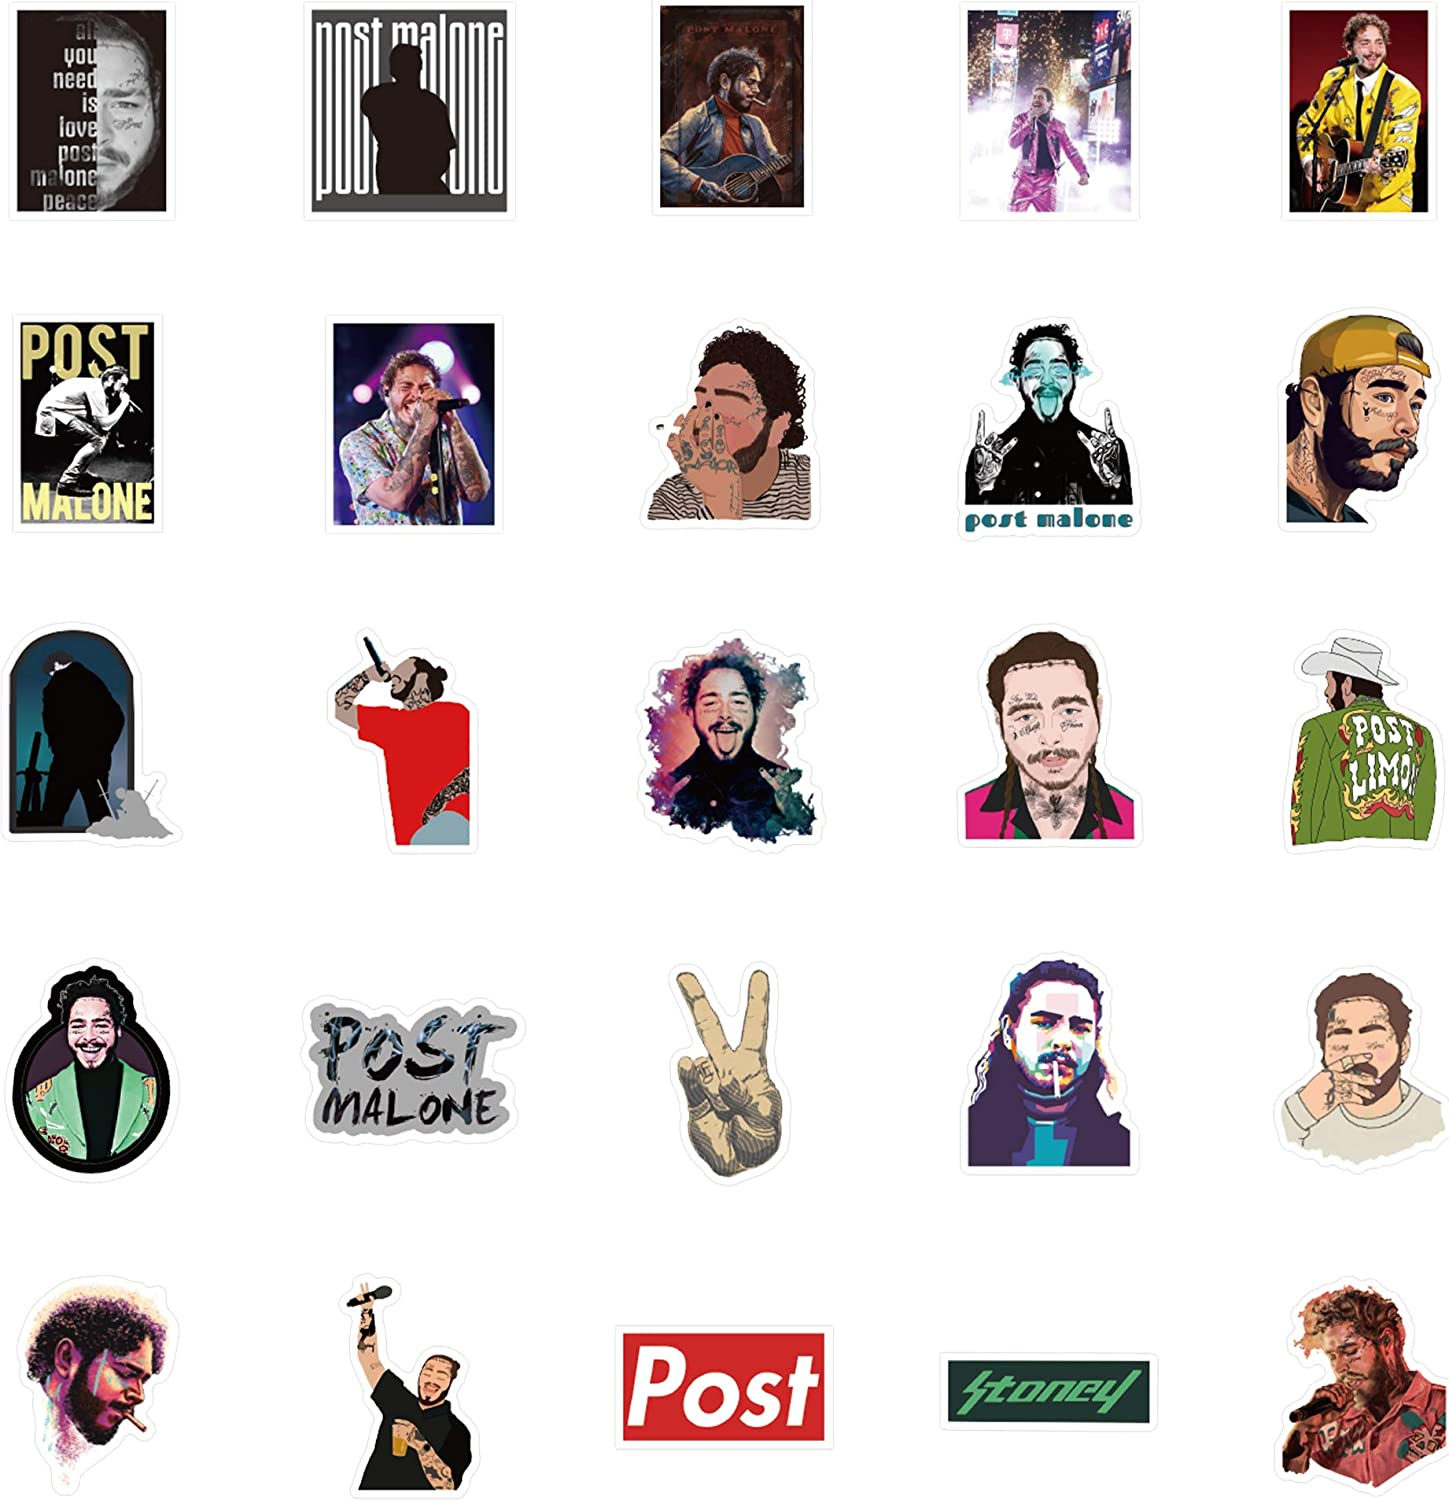 50Pcs Post Malone Singer Stickers Post Malone Theme Stickers Party Supplies Vinyl Waterproof Sticker Aesthetic Stickers Mobile Phone Stickers Birthday Christmas New Year Gift.